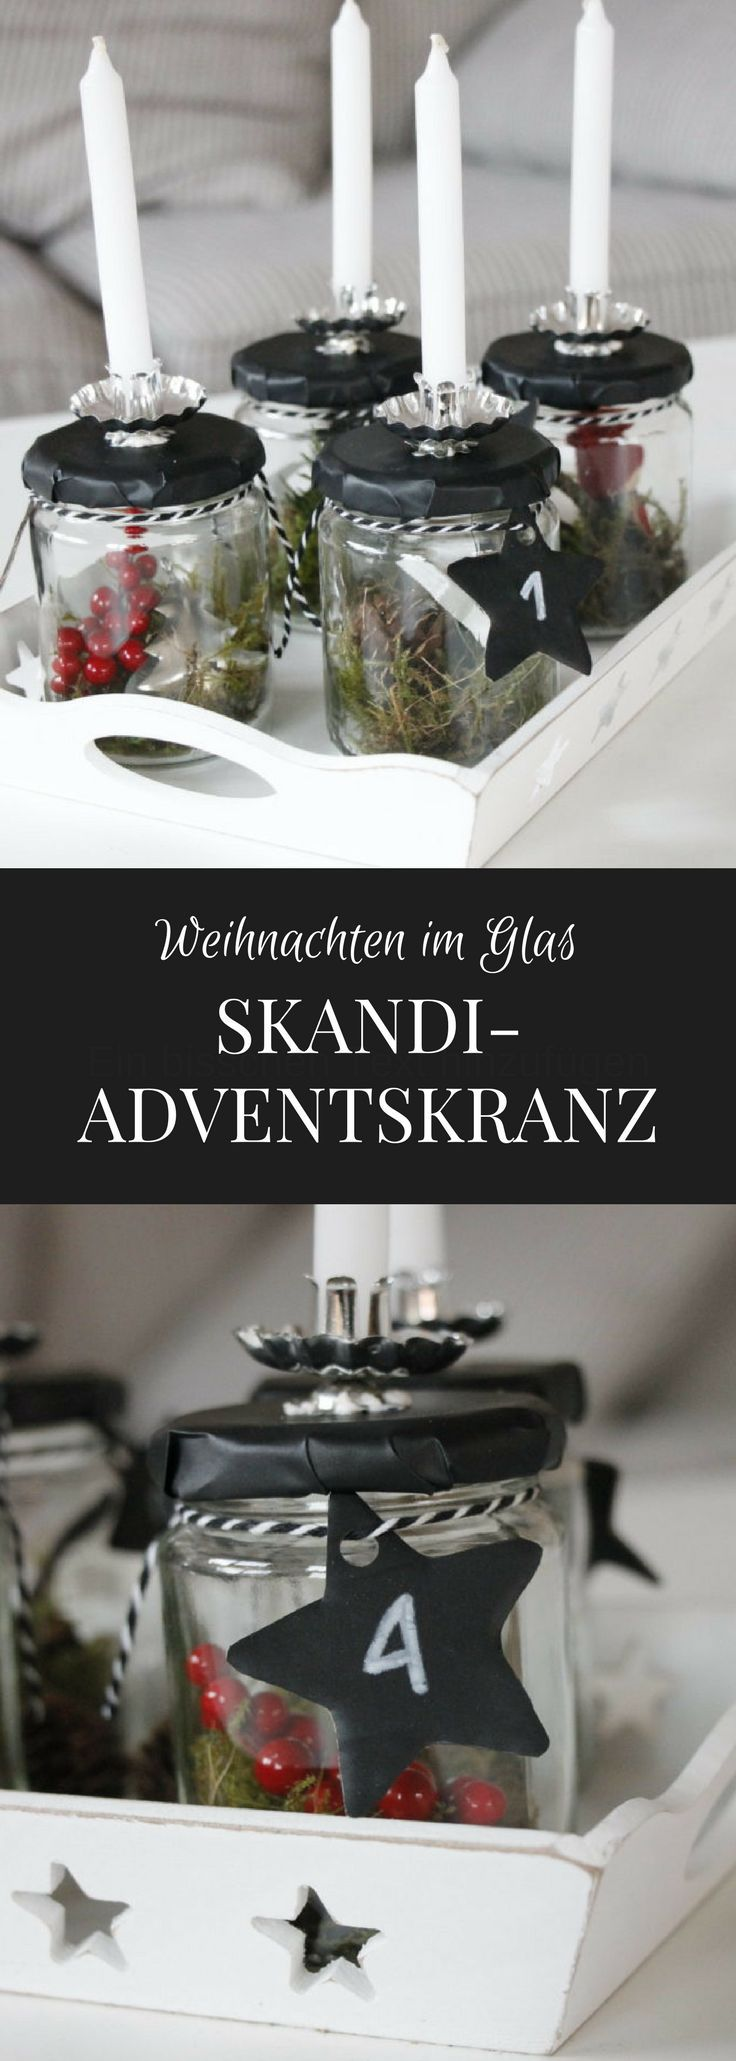 skandinavischer adventskranz im glas diy pinterest. Black Bedroom Furniture Sets. Home Design Ideas